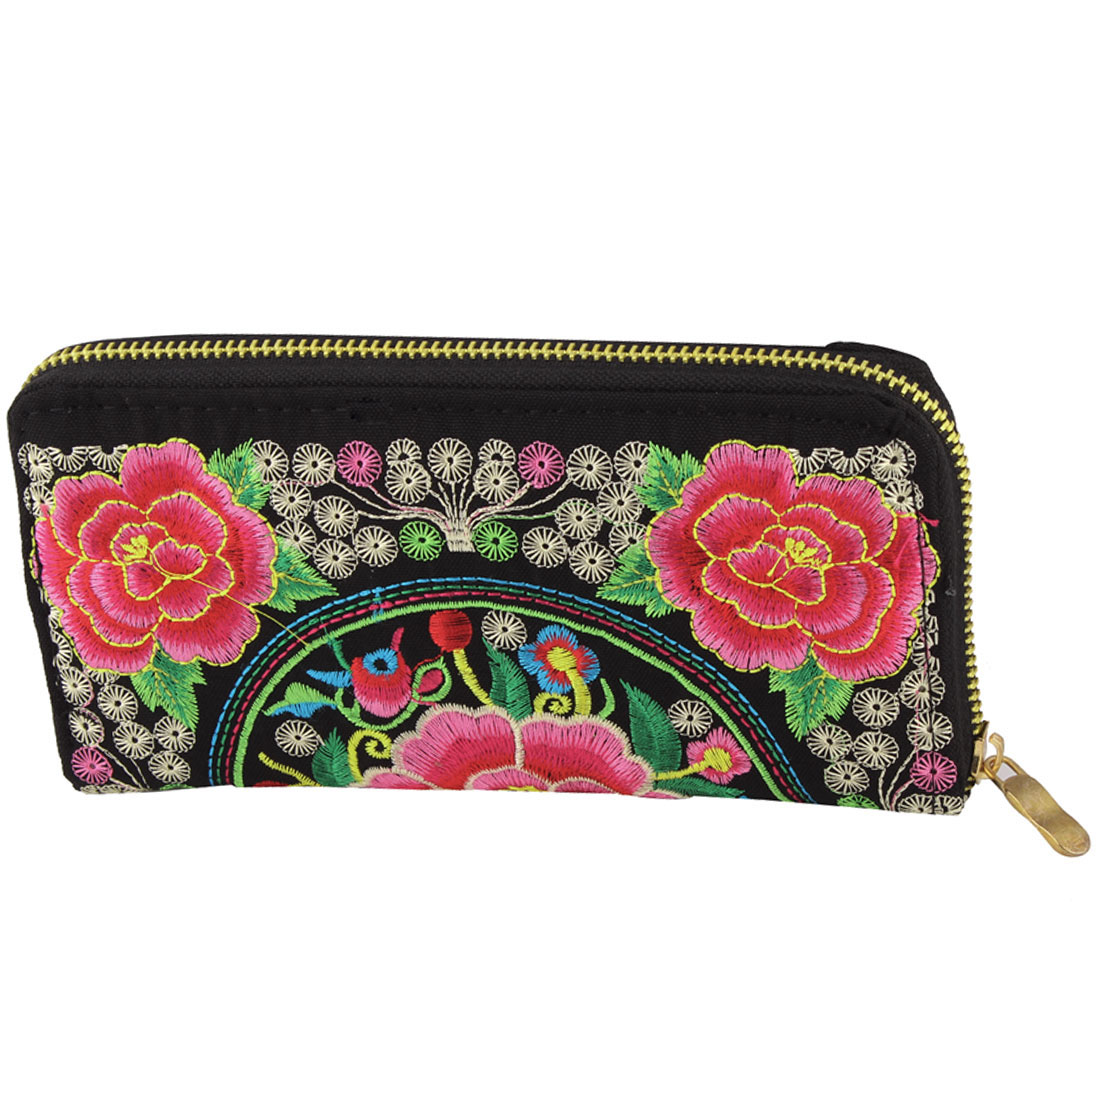 Women Embroidered Flower Zipper Closure Money Wallet Purse Handbag Black Pink